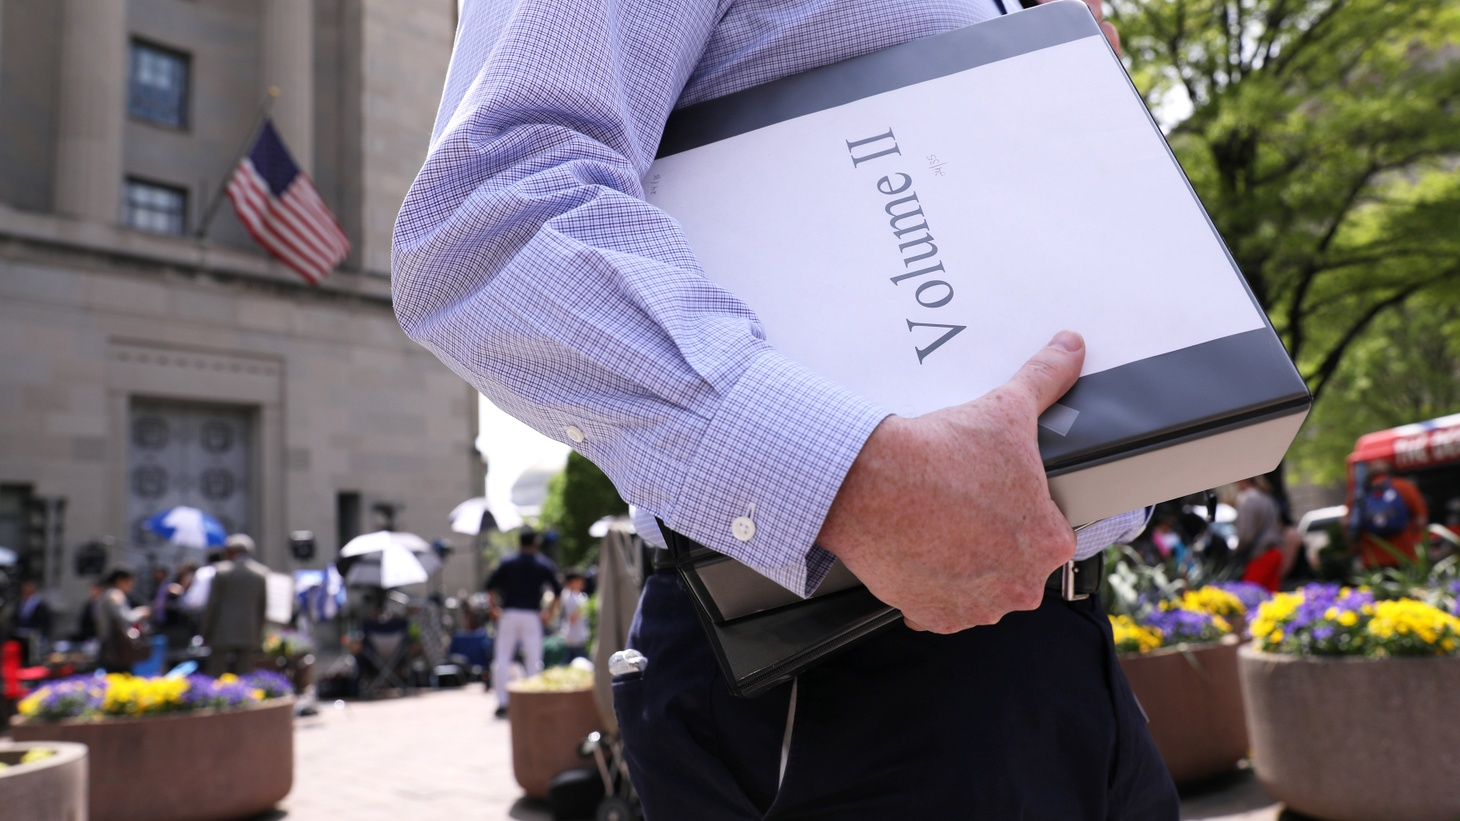 A reporter departs with his official copy of Special Counsel Robert Mueller's report on Russian interference in the 2016 U.S. presidential election, outside the Department of Justice in Washington, U.S., April 18, 2019.